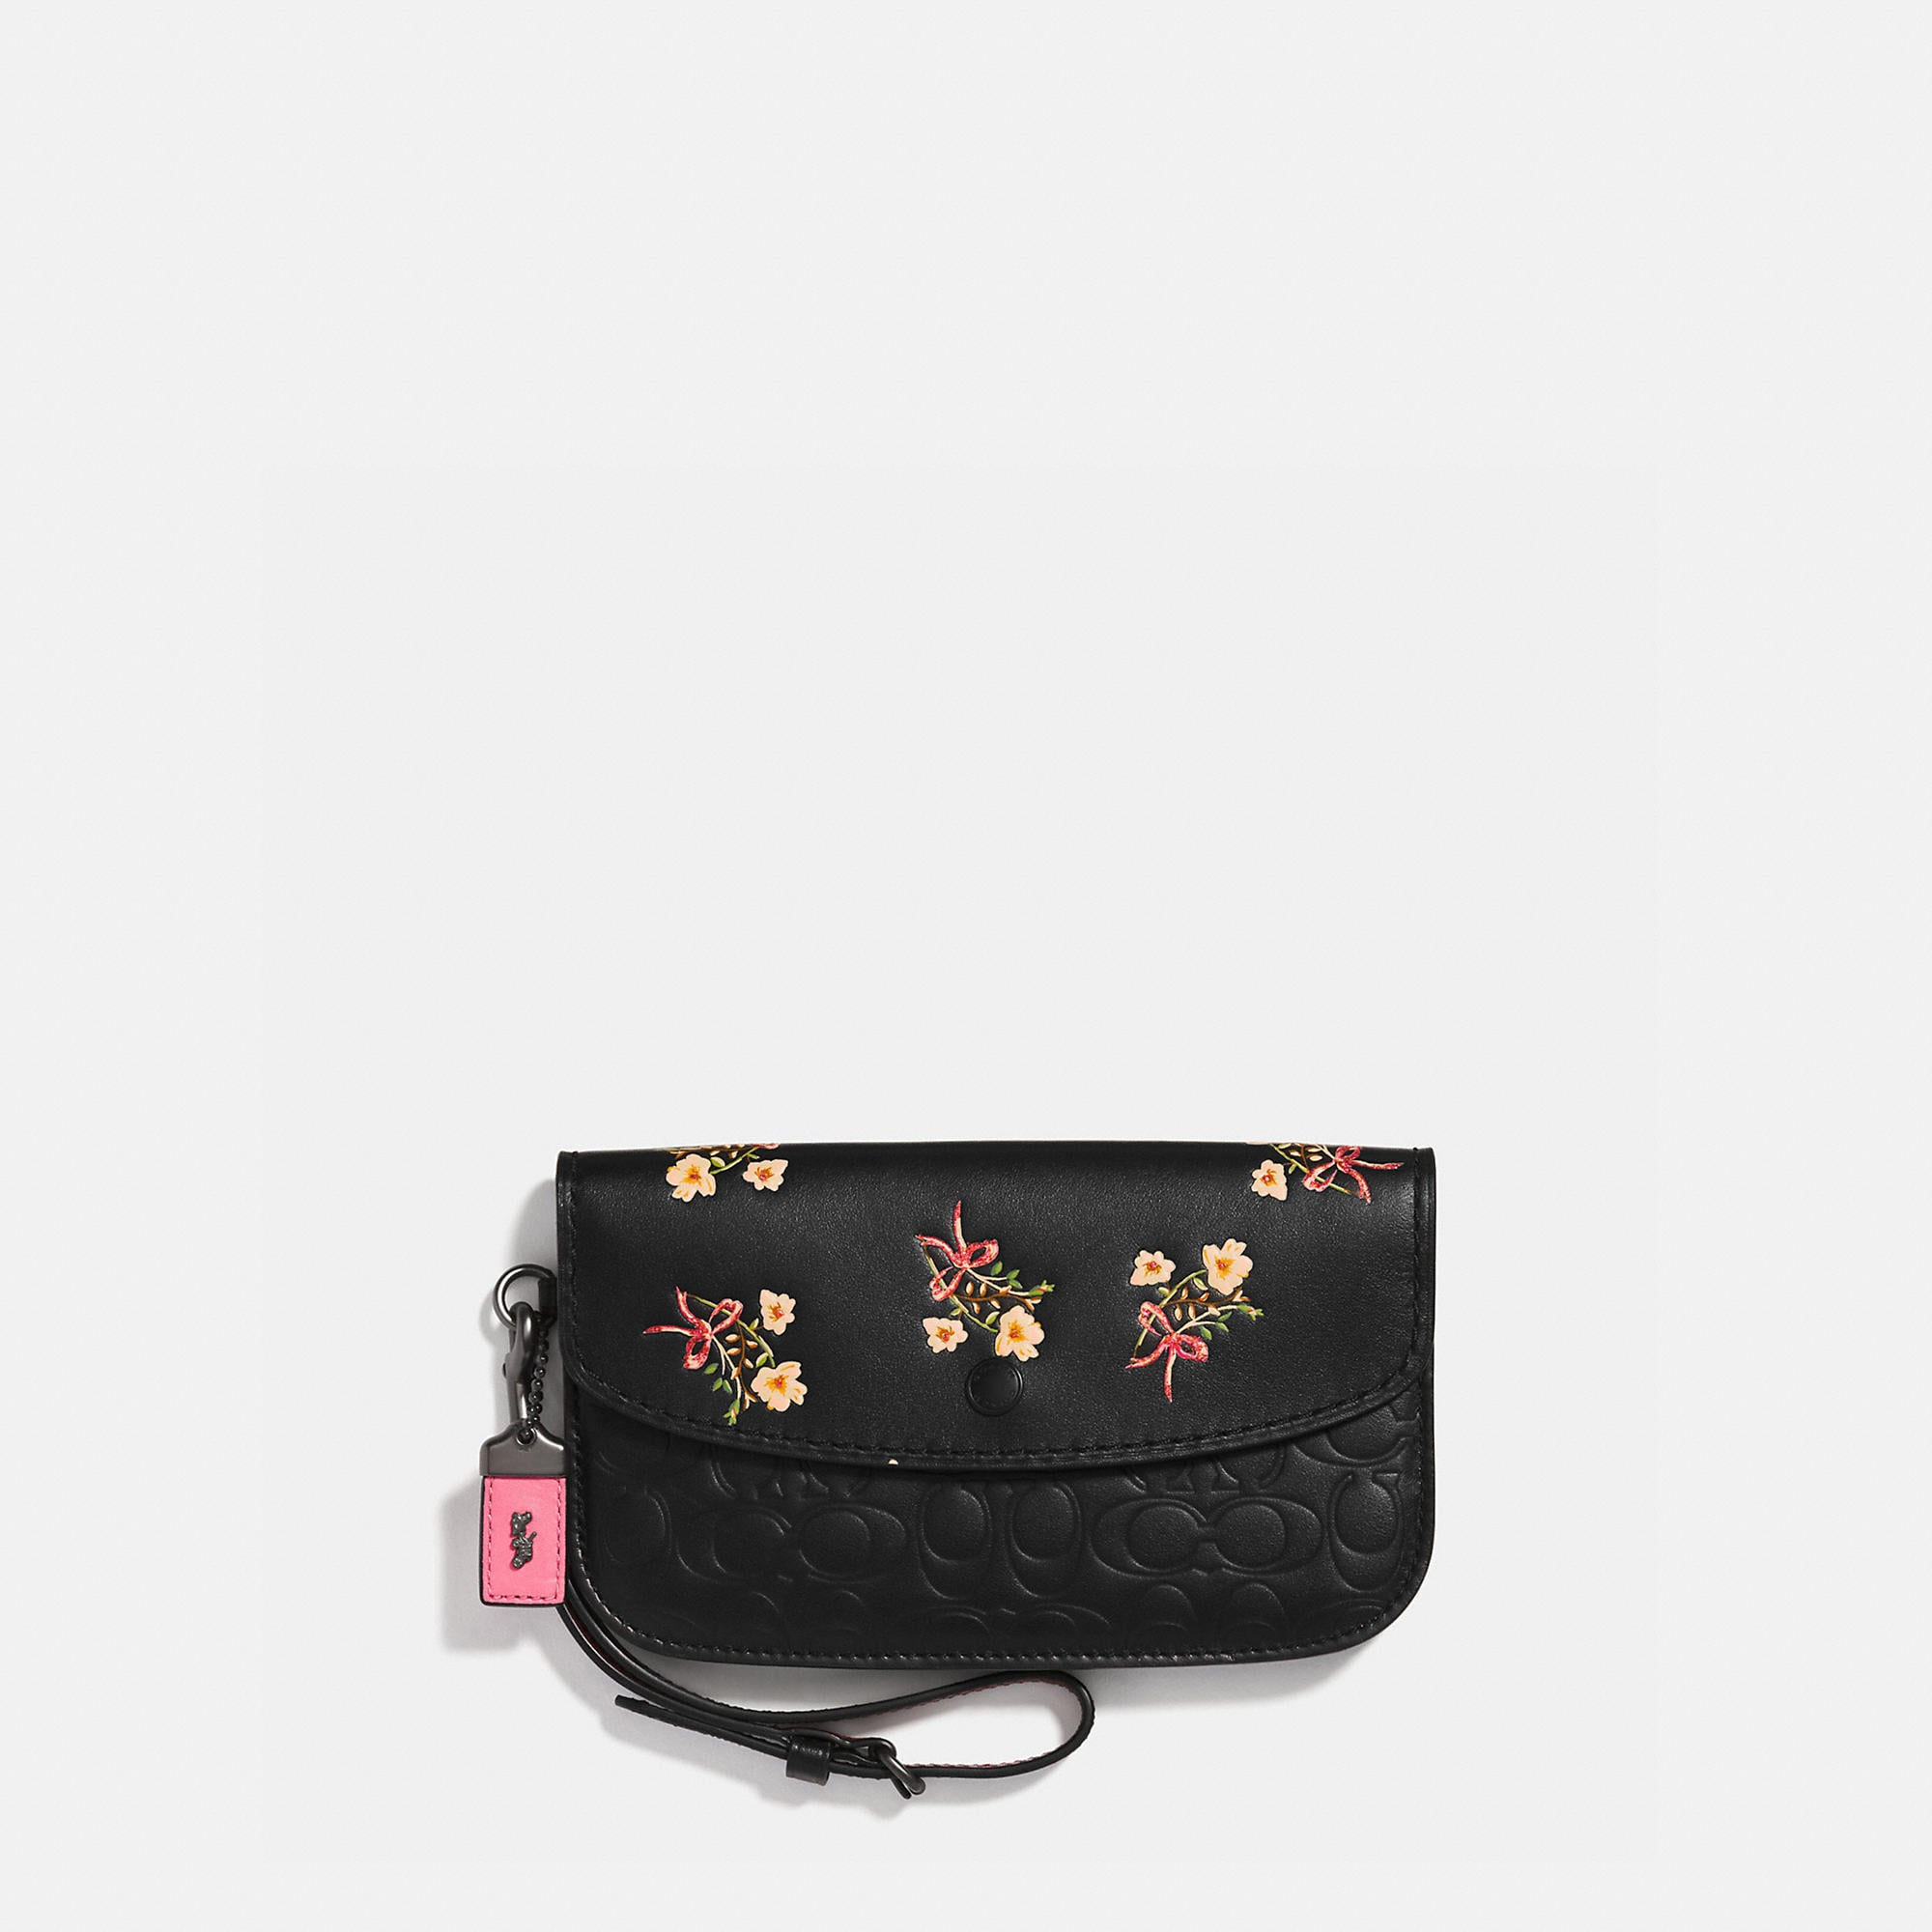 2eff99e6df COACH. Coach Clutch In Signature Leather With Floral Bow Print - Women S